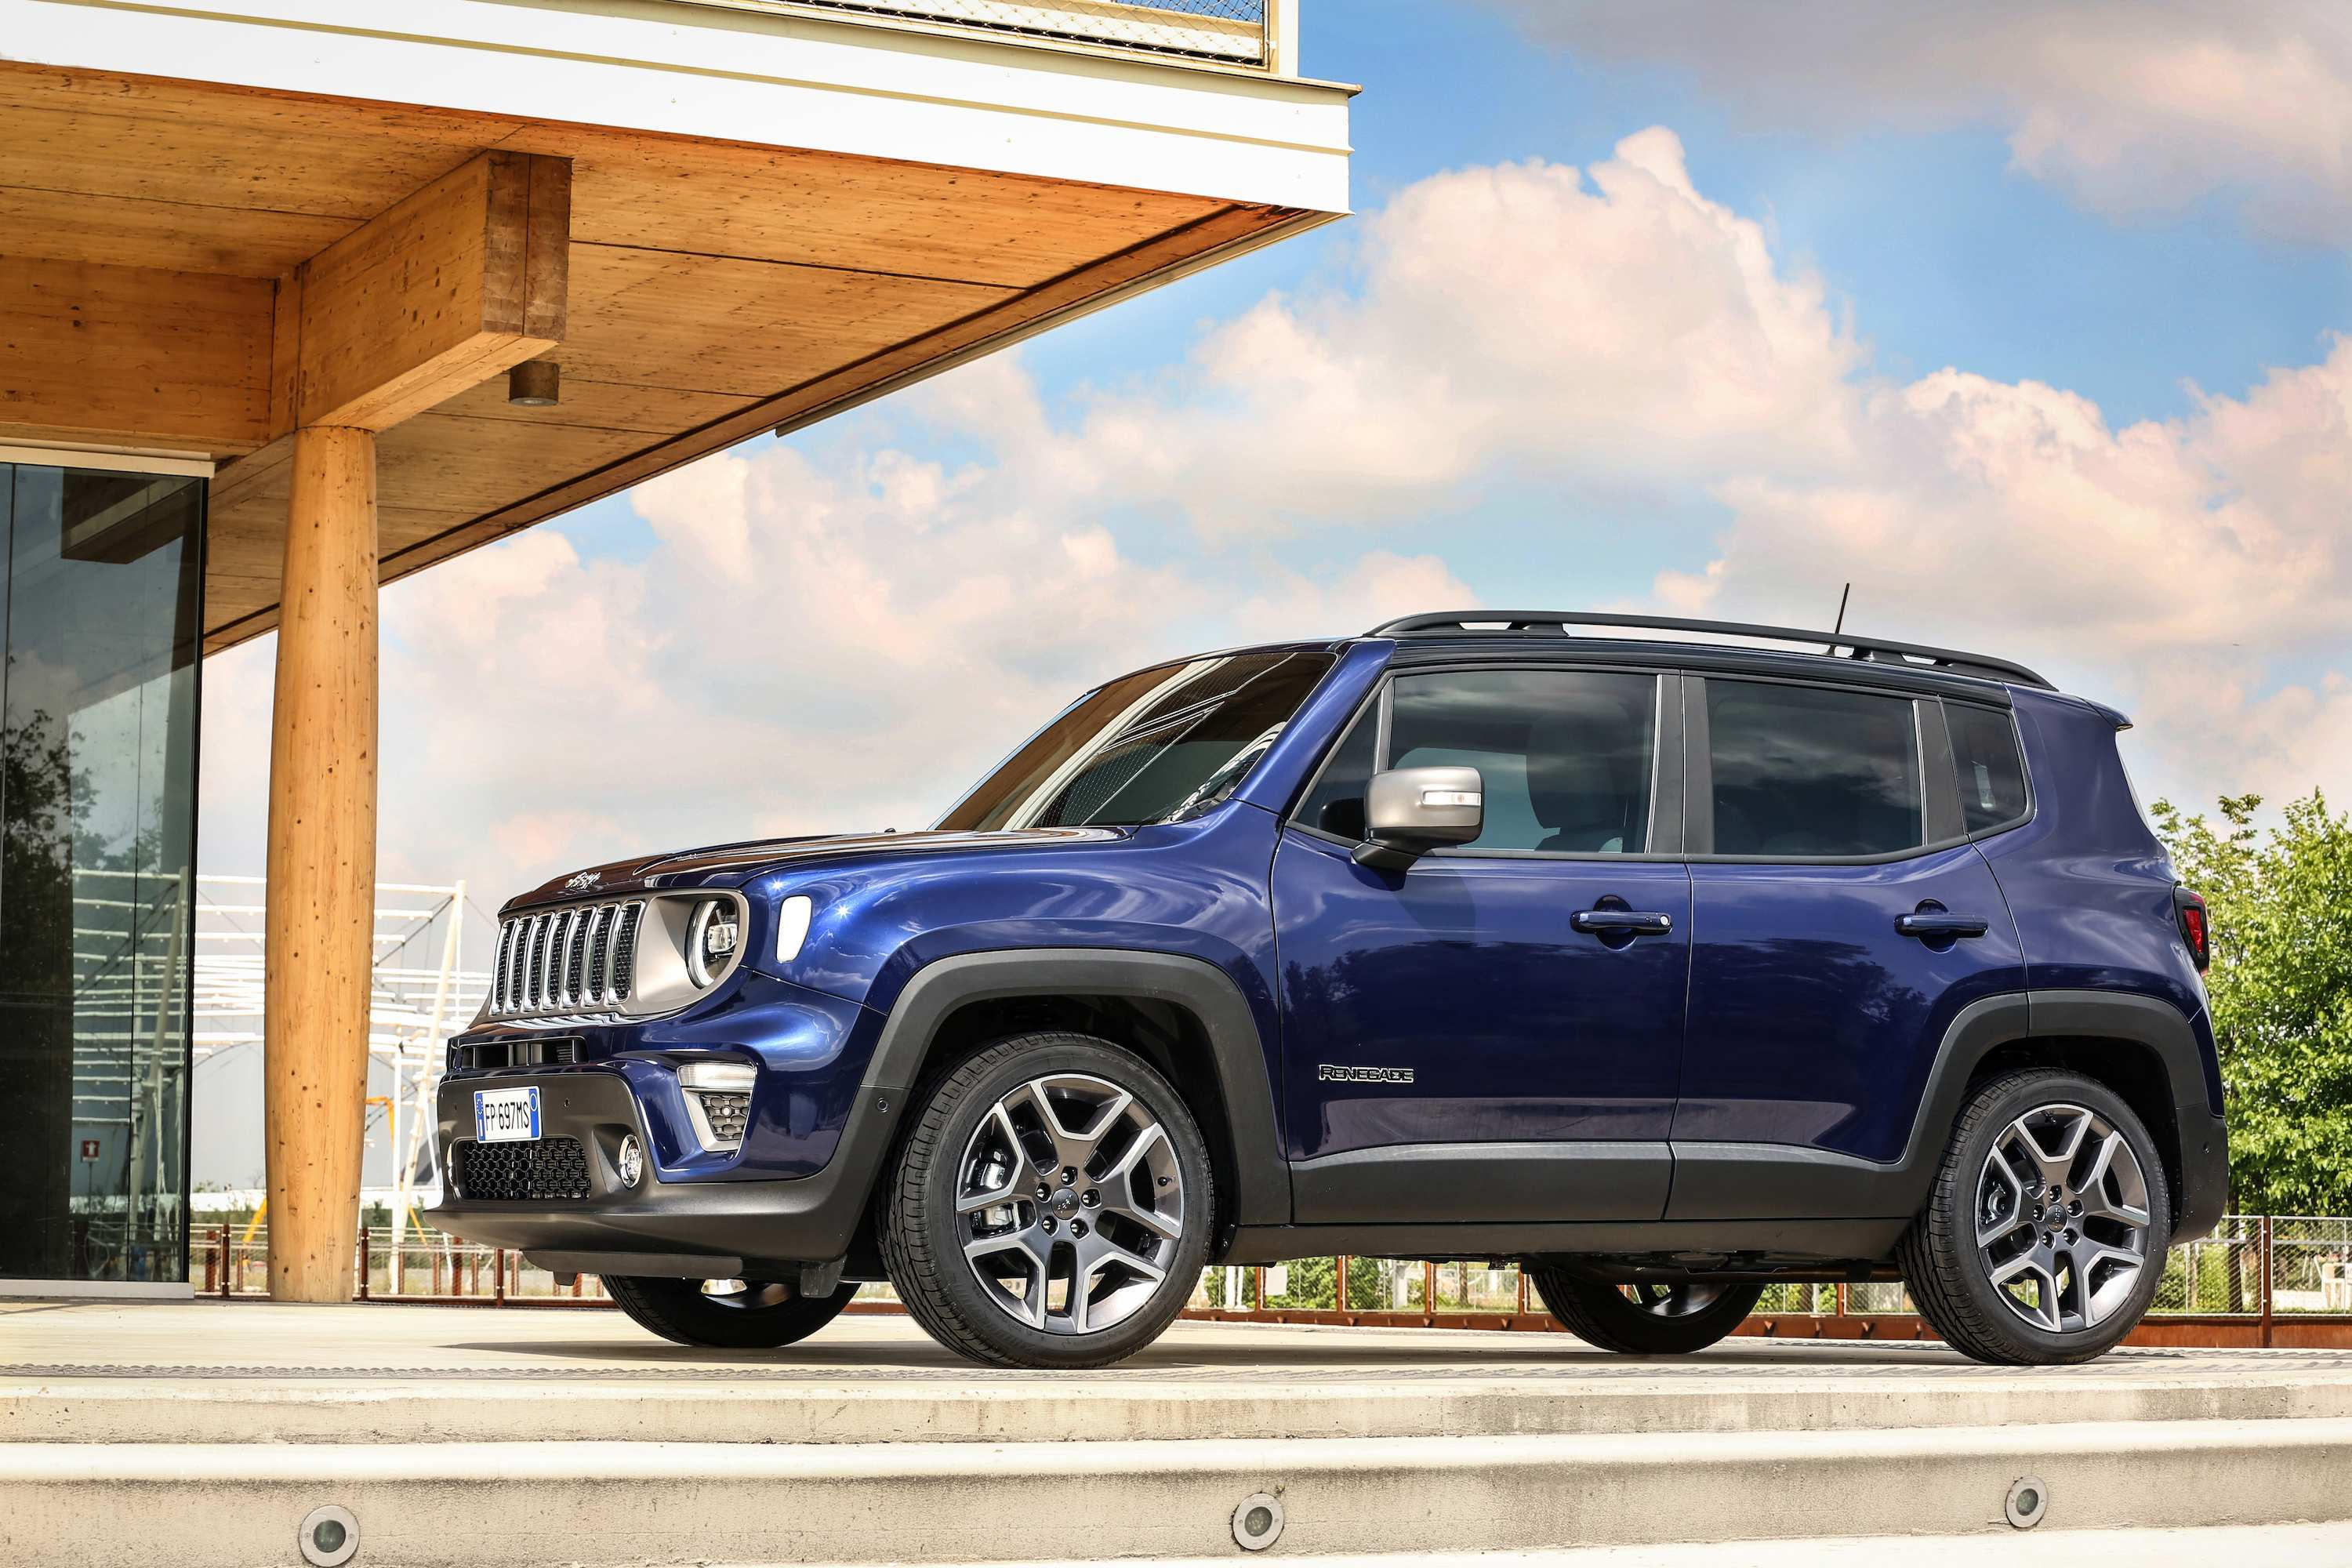 49 Best Review Jeep Renegade 2020 Concept by Jeep Renegade 2020